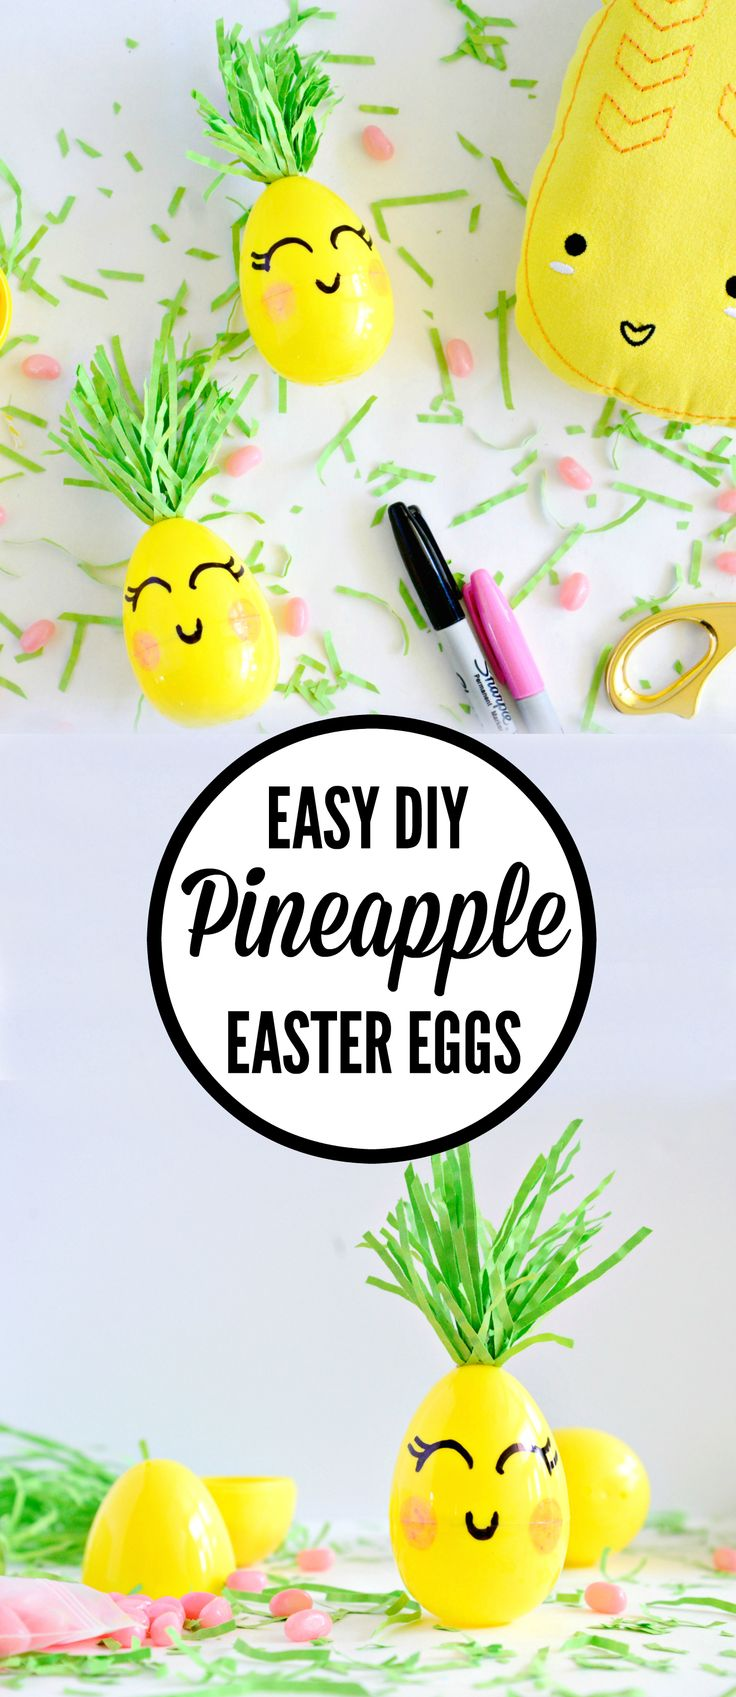 SO cute! Making these Easy DIY pineapple easter eggs from Hello Splendid